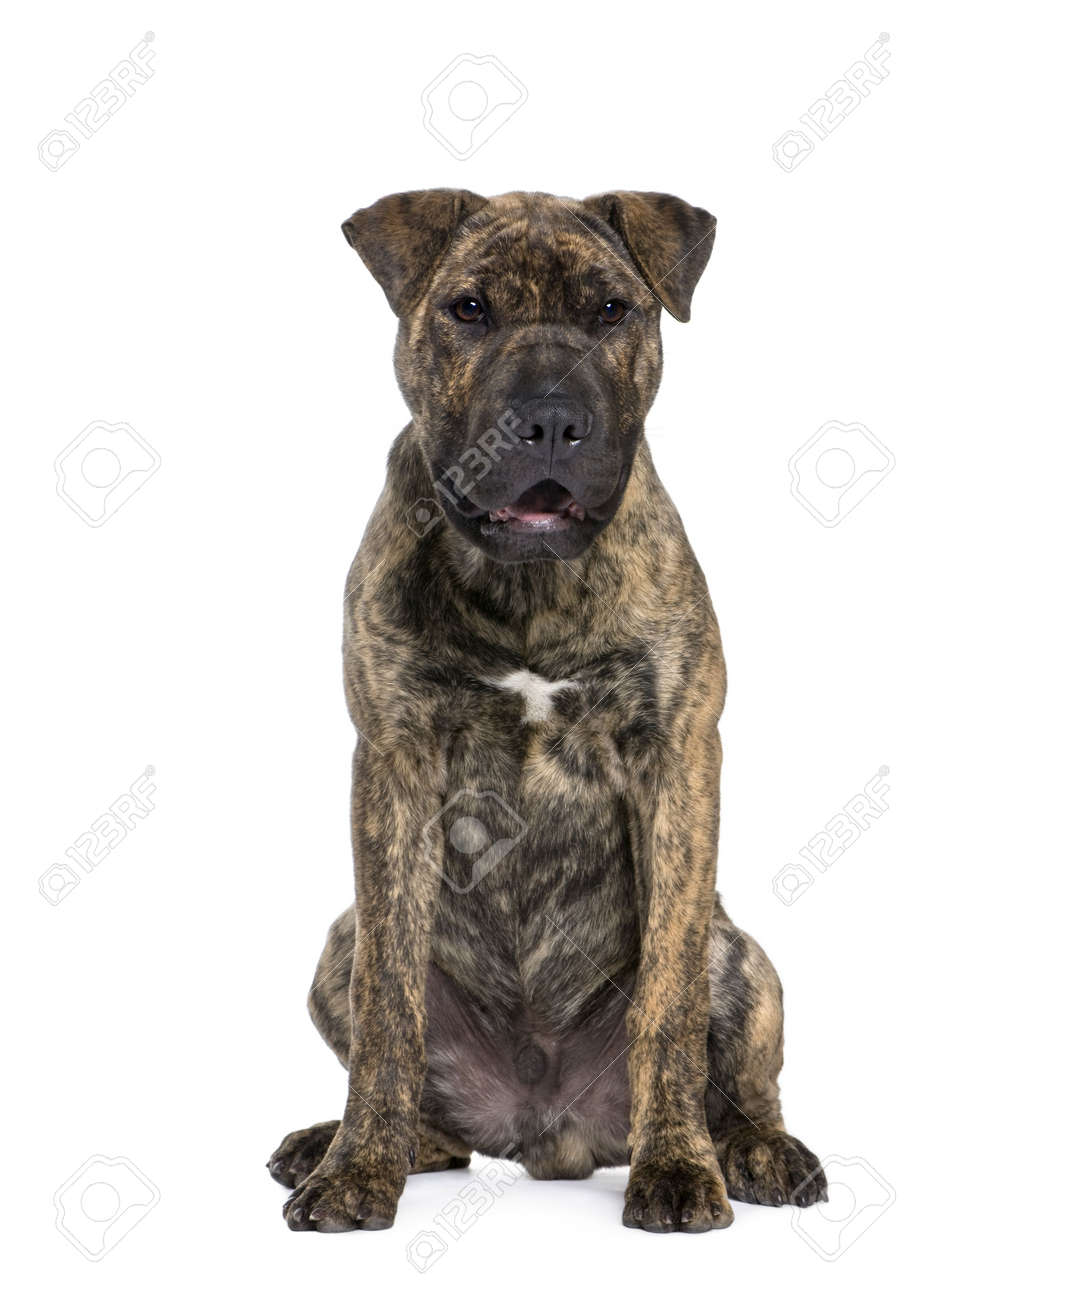 Mixed-breed dog, 4 months old, sitting in front of white background, studio shot Stock Photo - 5912269